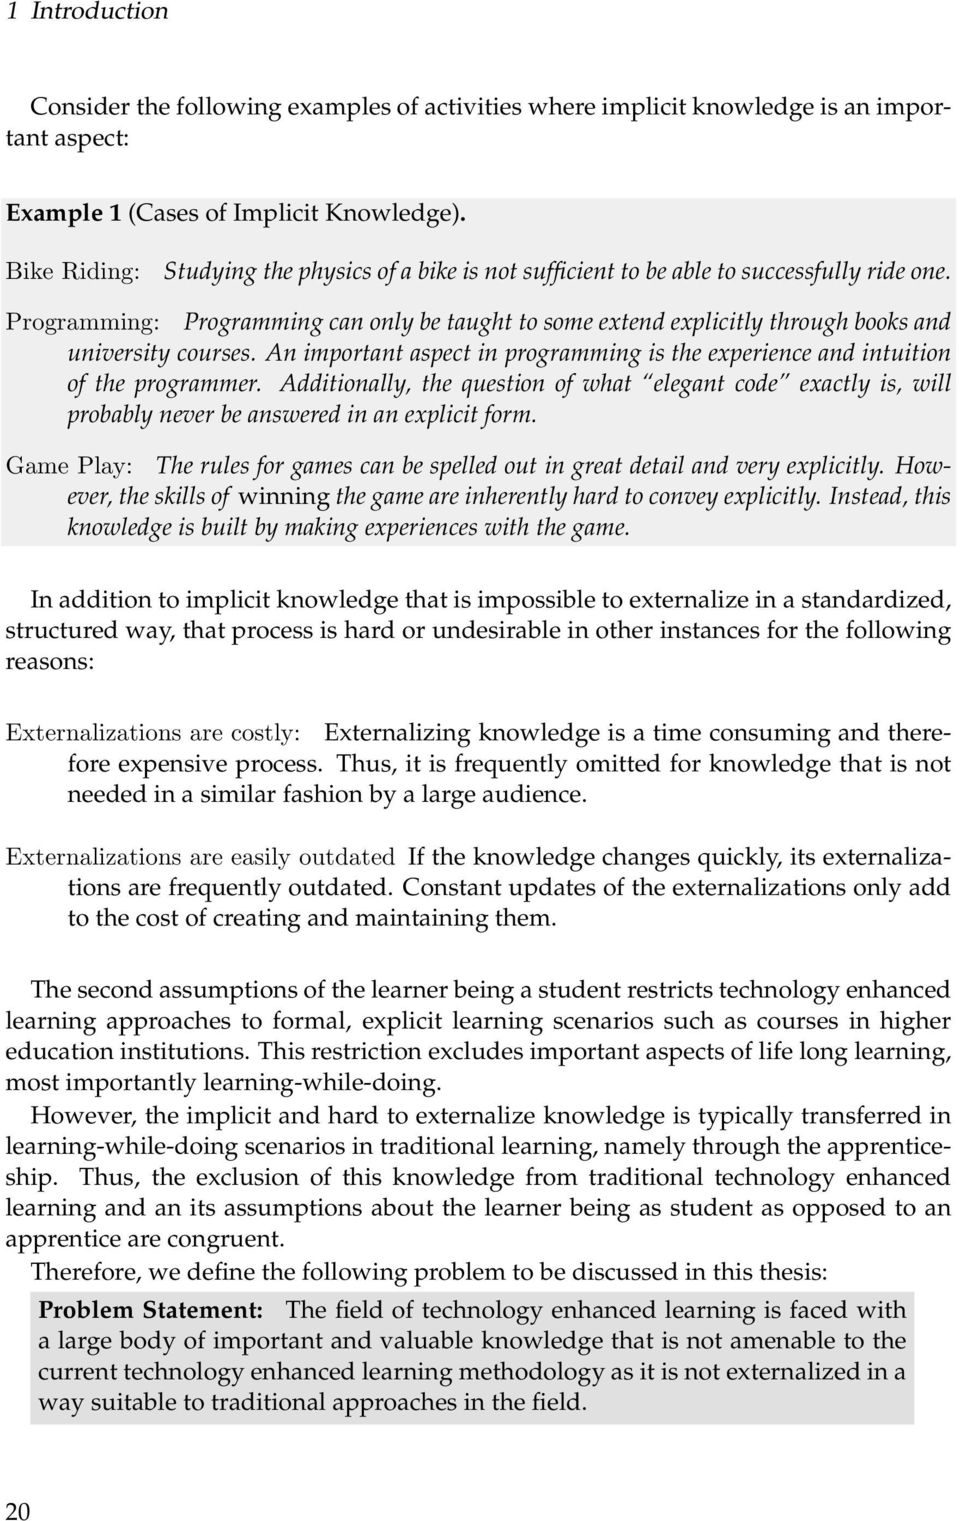 Programming: Programming can only be taught to some extend explicitly through books and university courses. An important aspect in programming is the experience and intuition of the programmer.